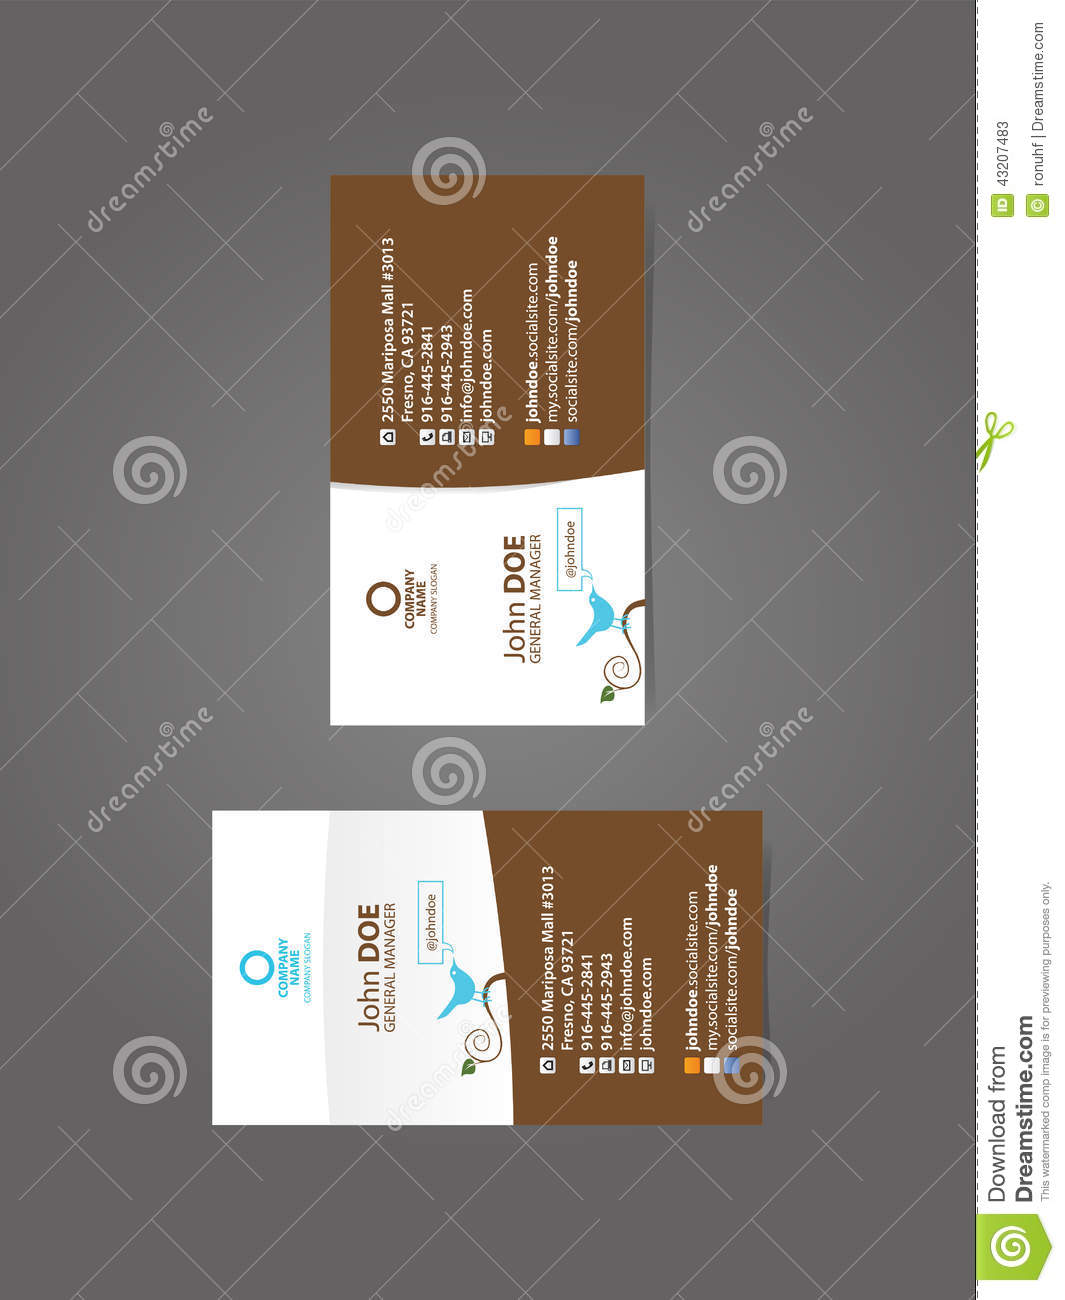 Multiple image business cards choice image free business cards professional social business card stock vector image 43207483 royalty free vector download professional social business card magicingreecefo Images